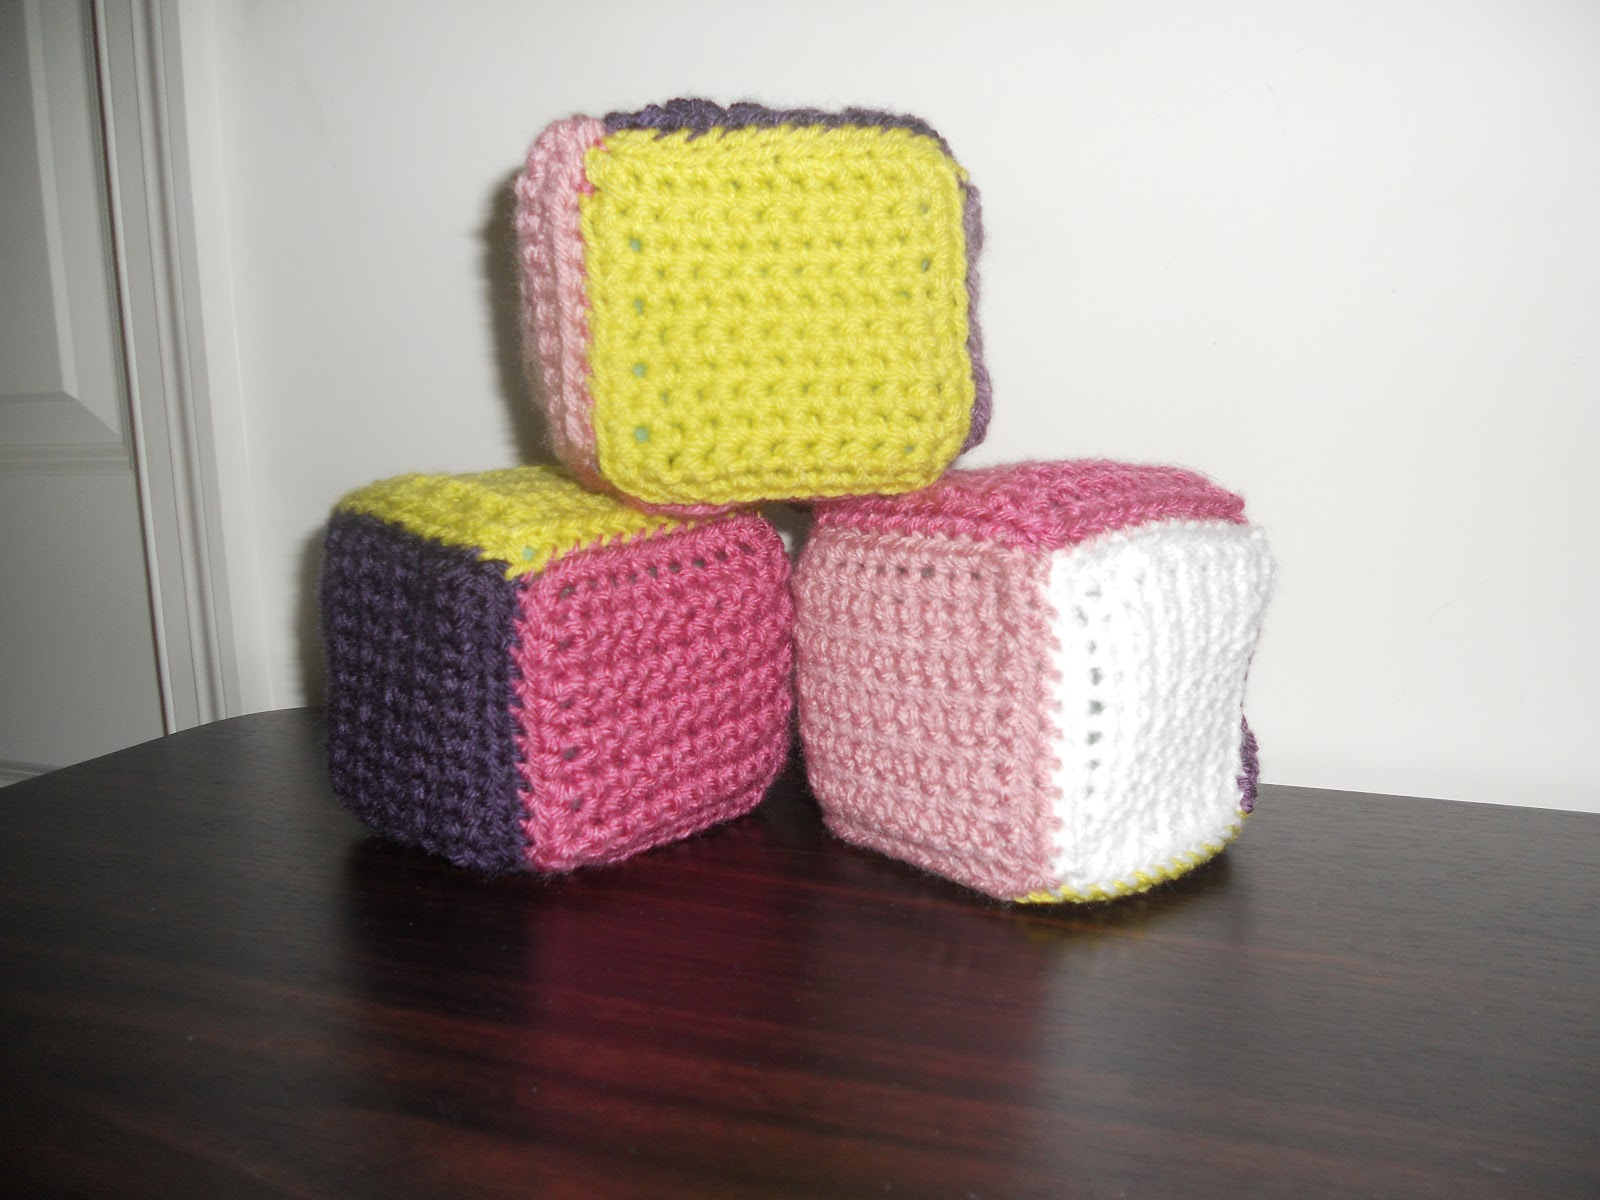 Free Easy Crochet Patterns For Baby Toys : Crochet Cysters Crafts: Baby Gift Basket - Blocks and Blanket